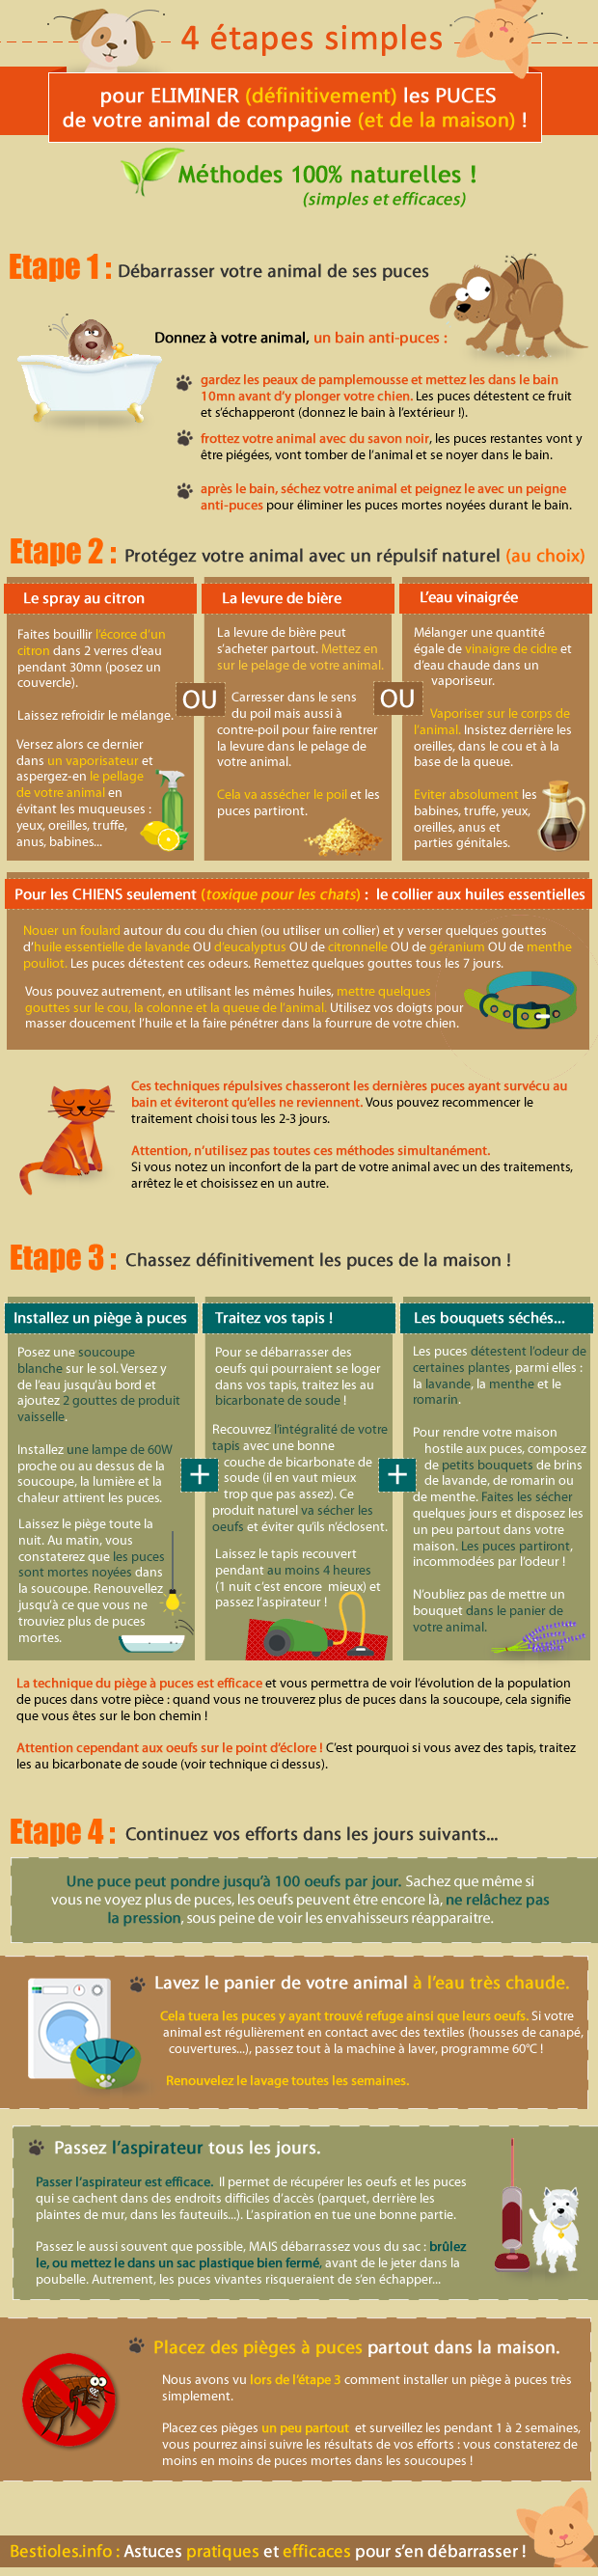 infographie_debarrasser_puces_animal